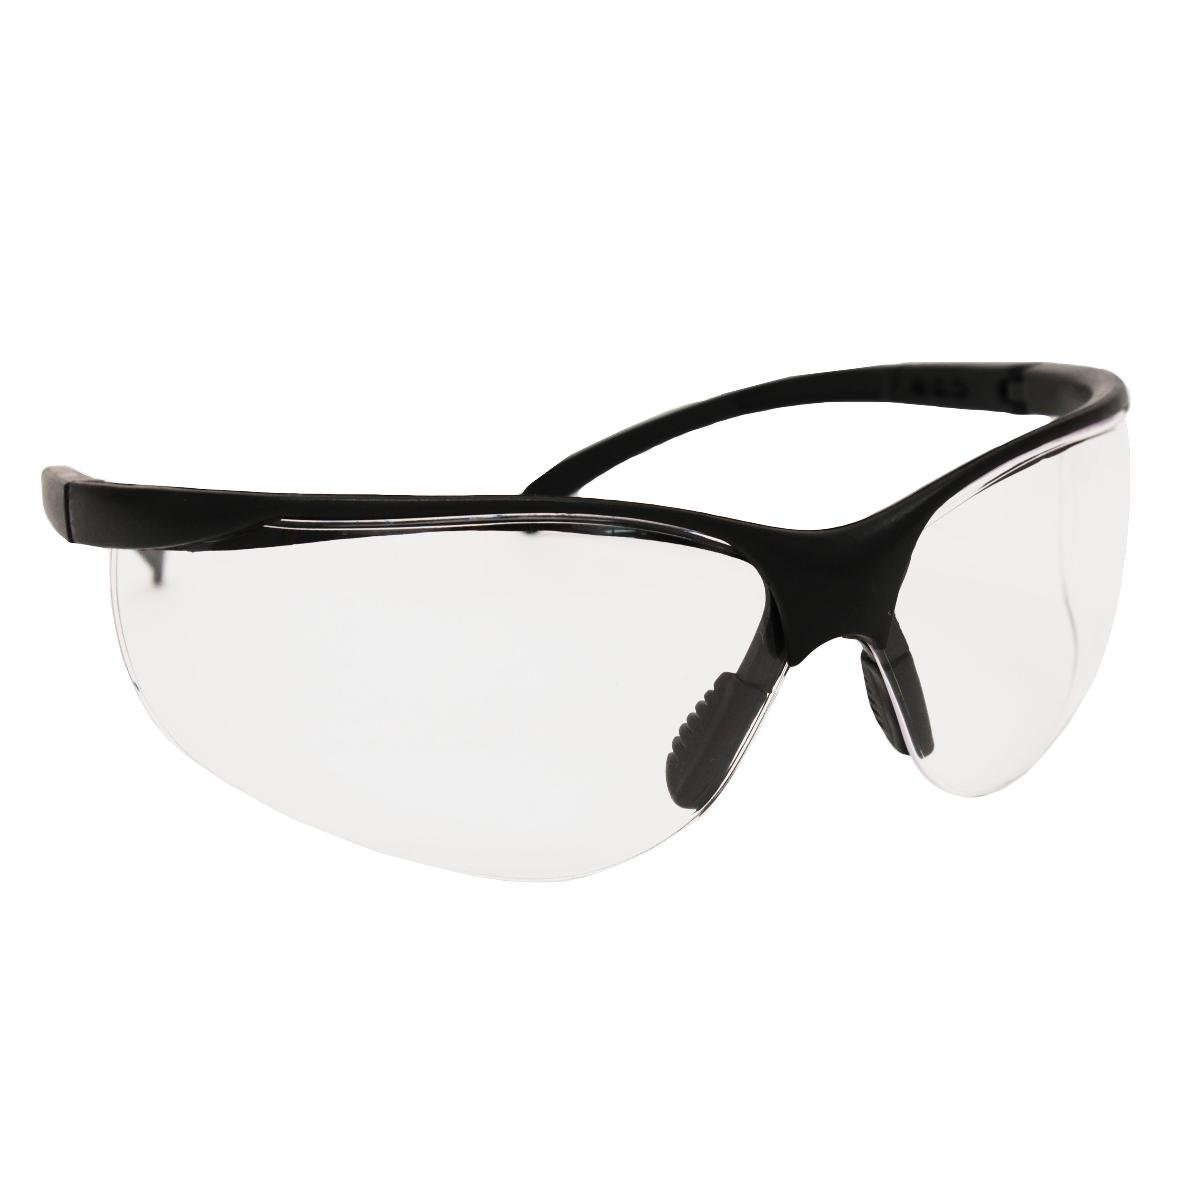 f4a131e4b8a9 Amazon.com : Caldwell Adjustable Pro Range Glasses with Clear Lenses and  Black Frame for Outdoor, Range, Shooting, Competition and Hunting : Sports  & ...